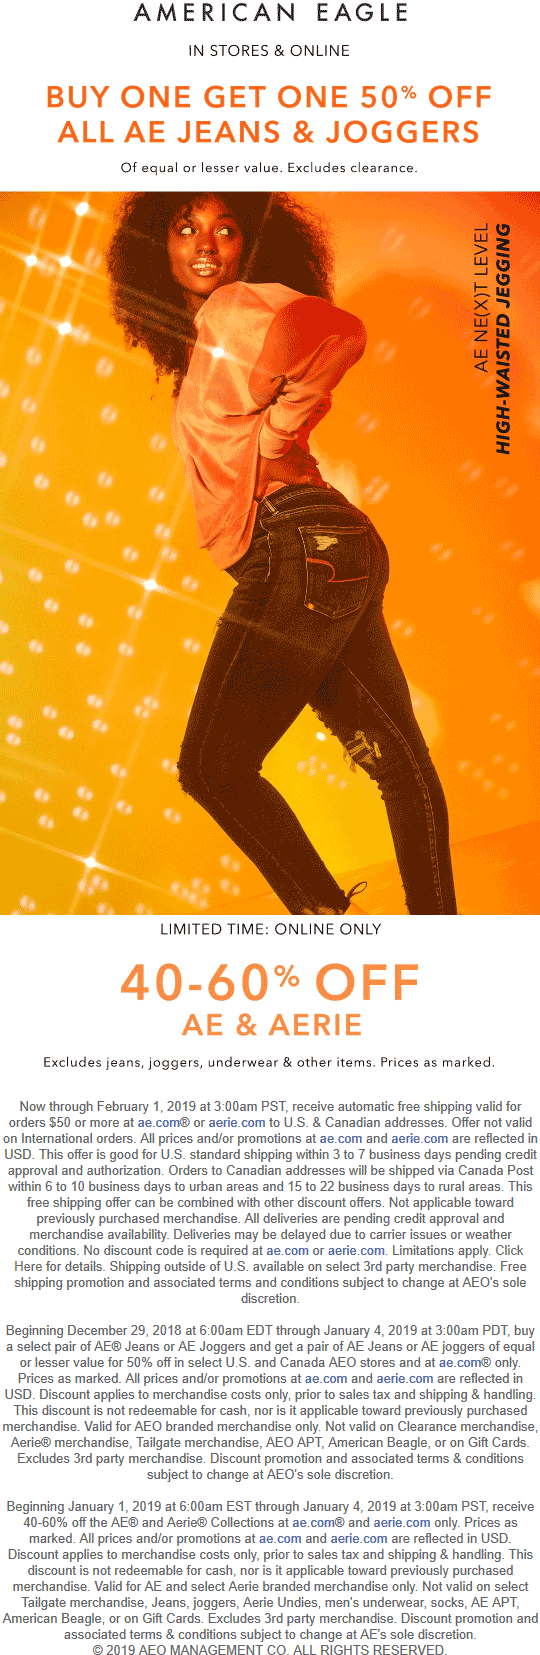 American Eagle Coupon August 2020 Second jeans 50% off at American Eagle, ditto online